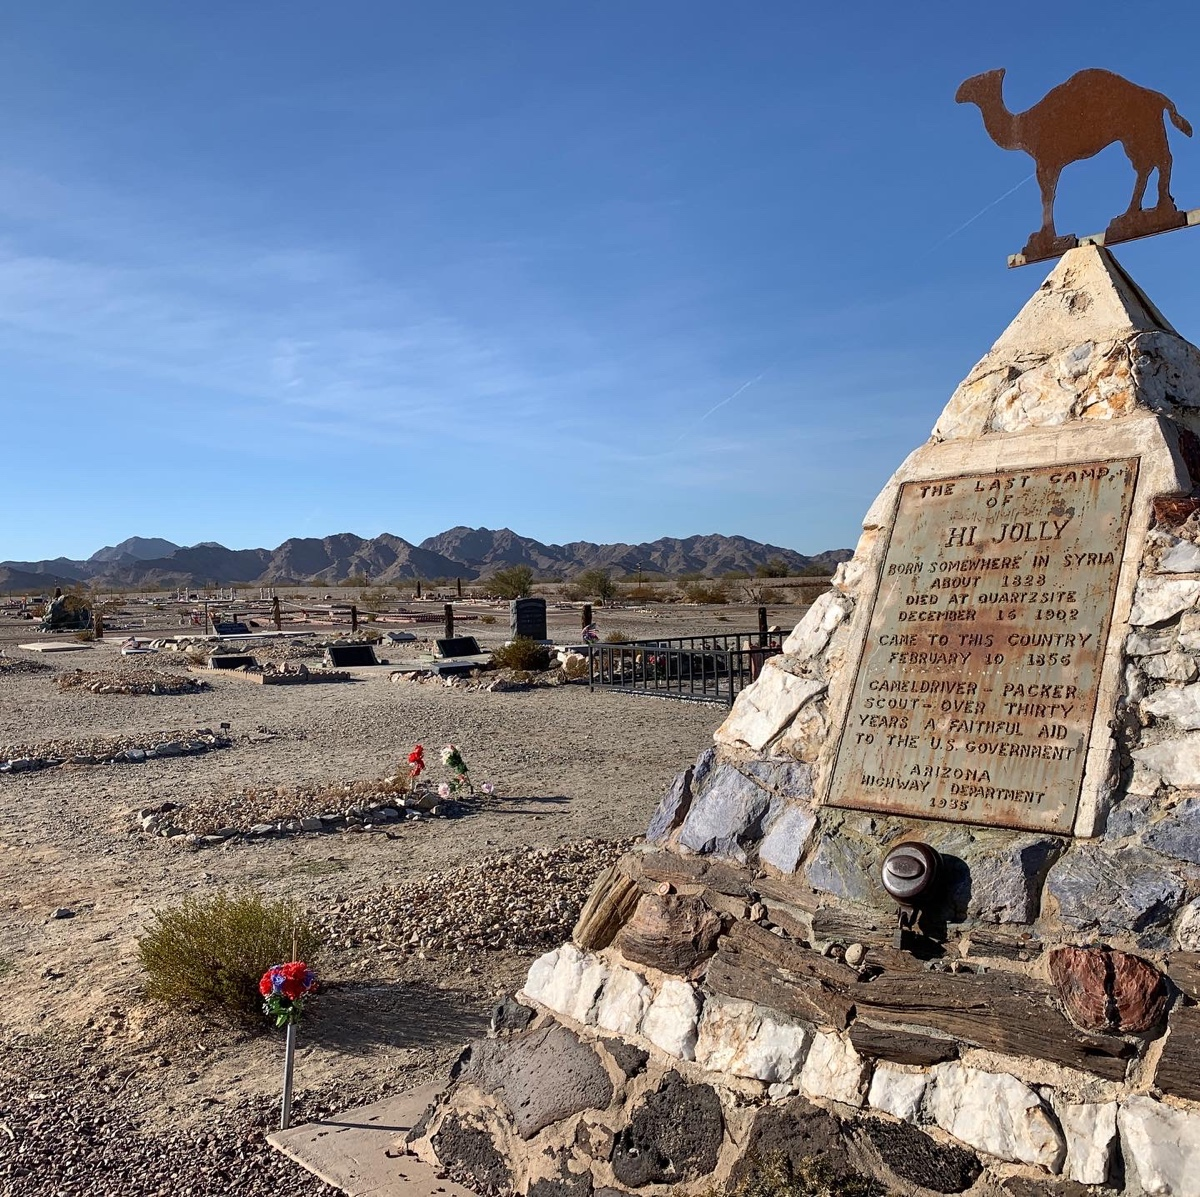 A stone pyramid monument with blue skies and a cemetery in the background